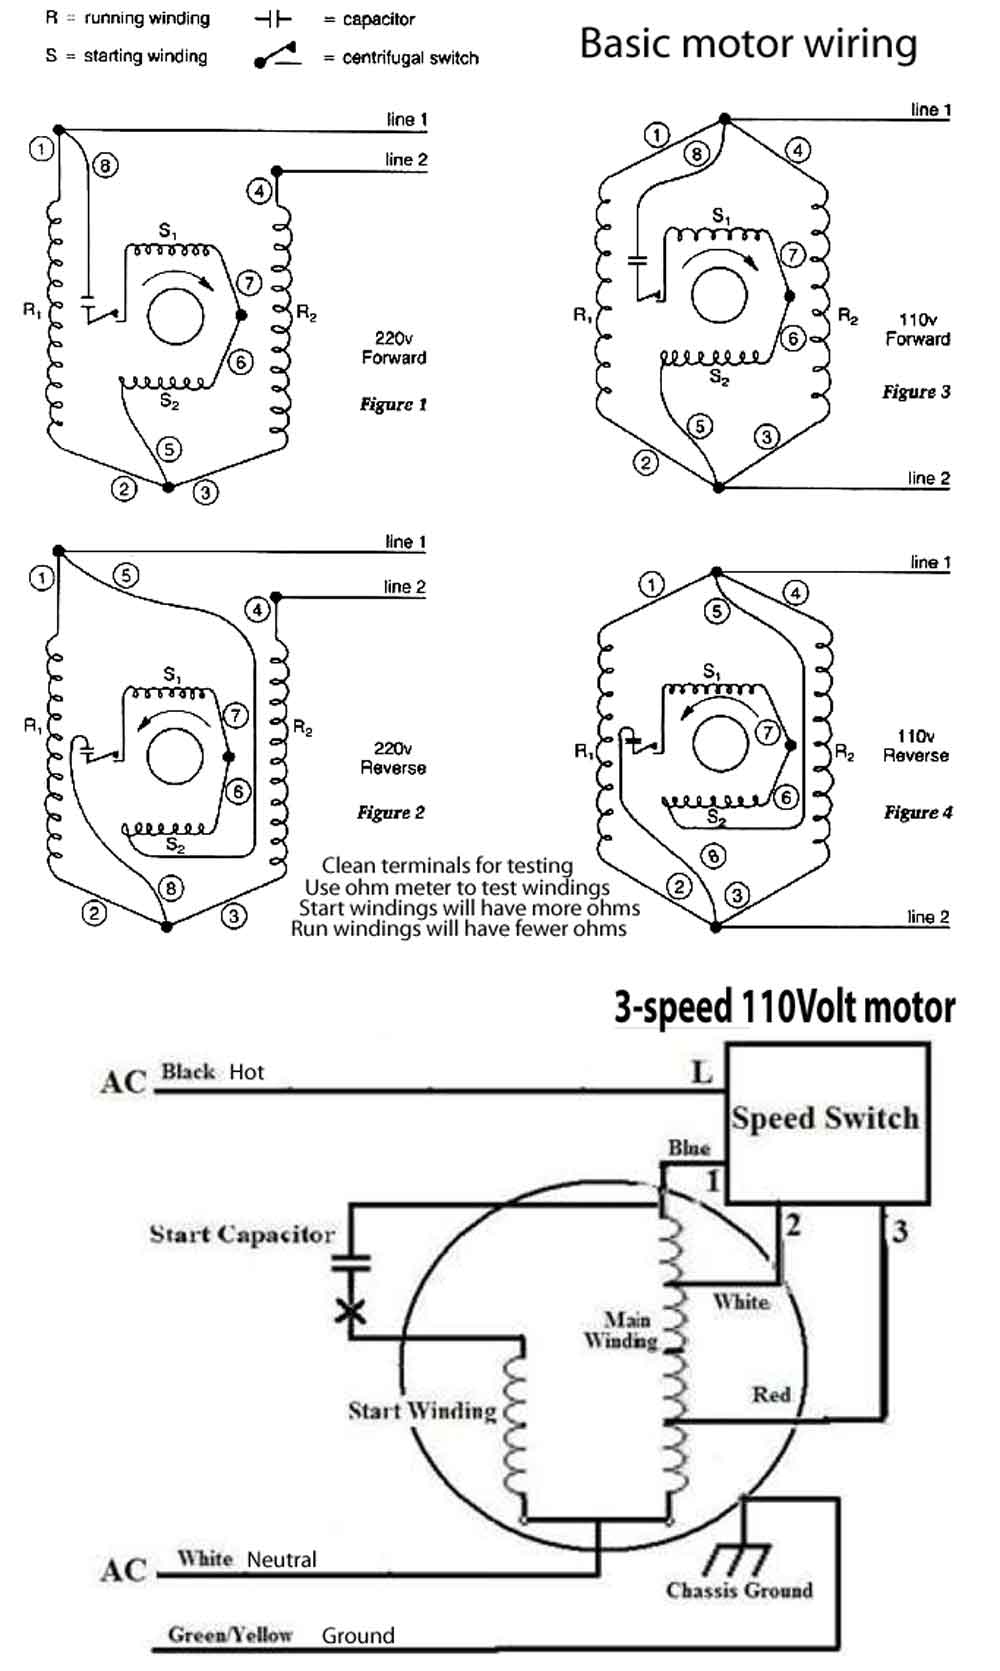 Motor wiring 500 how to wire 3 speed fan switch dayton electric motor wiring schematics at crackthecode.co